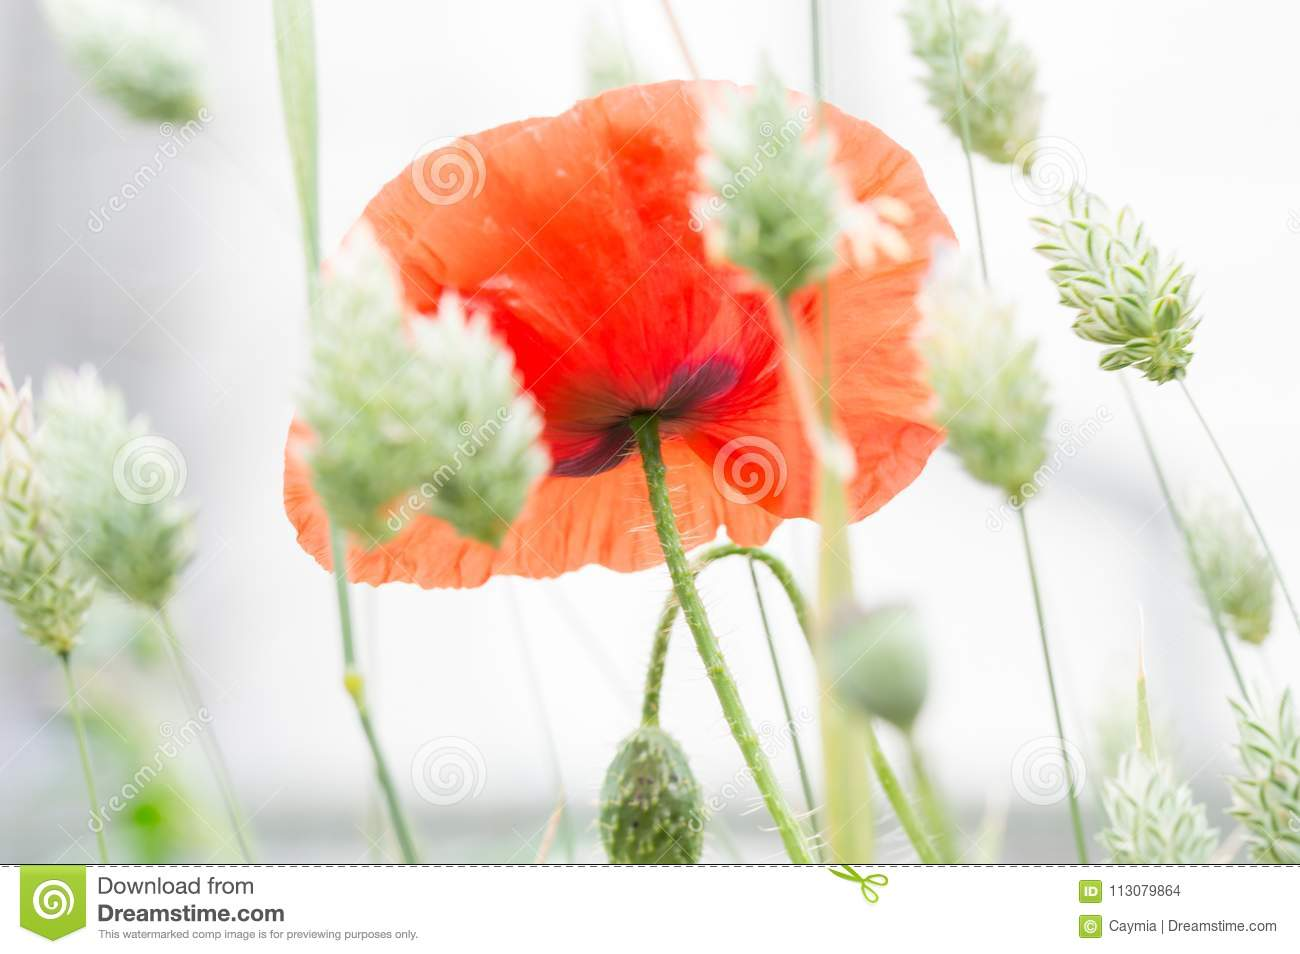 Flanders Poppy Flower Papaver Rhoeas And Canary Grass Stock Photo